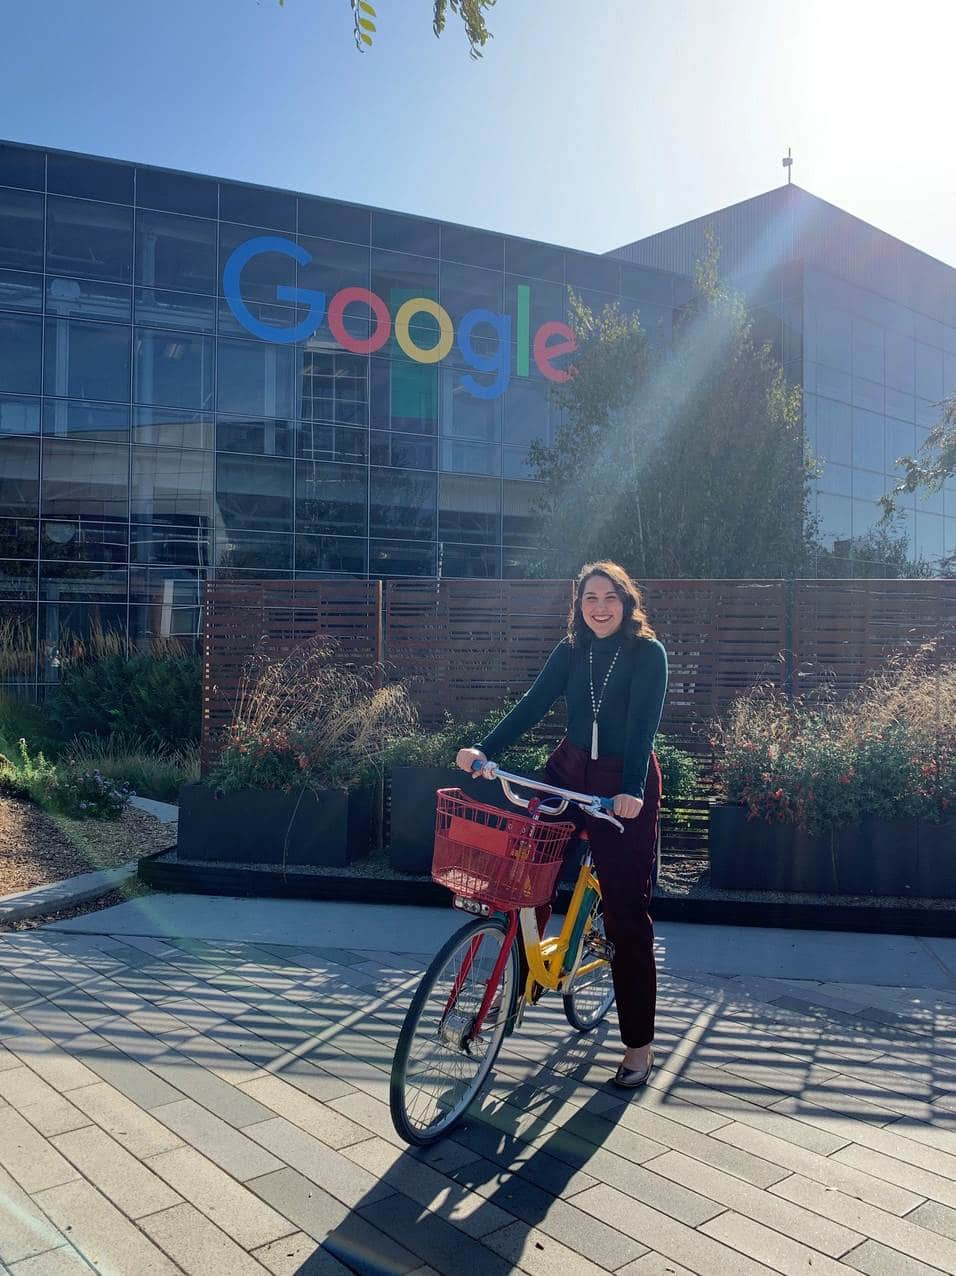 Nelly Wilson sitting on a bike outside of Google's headquarters.